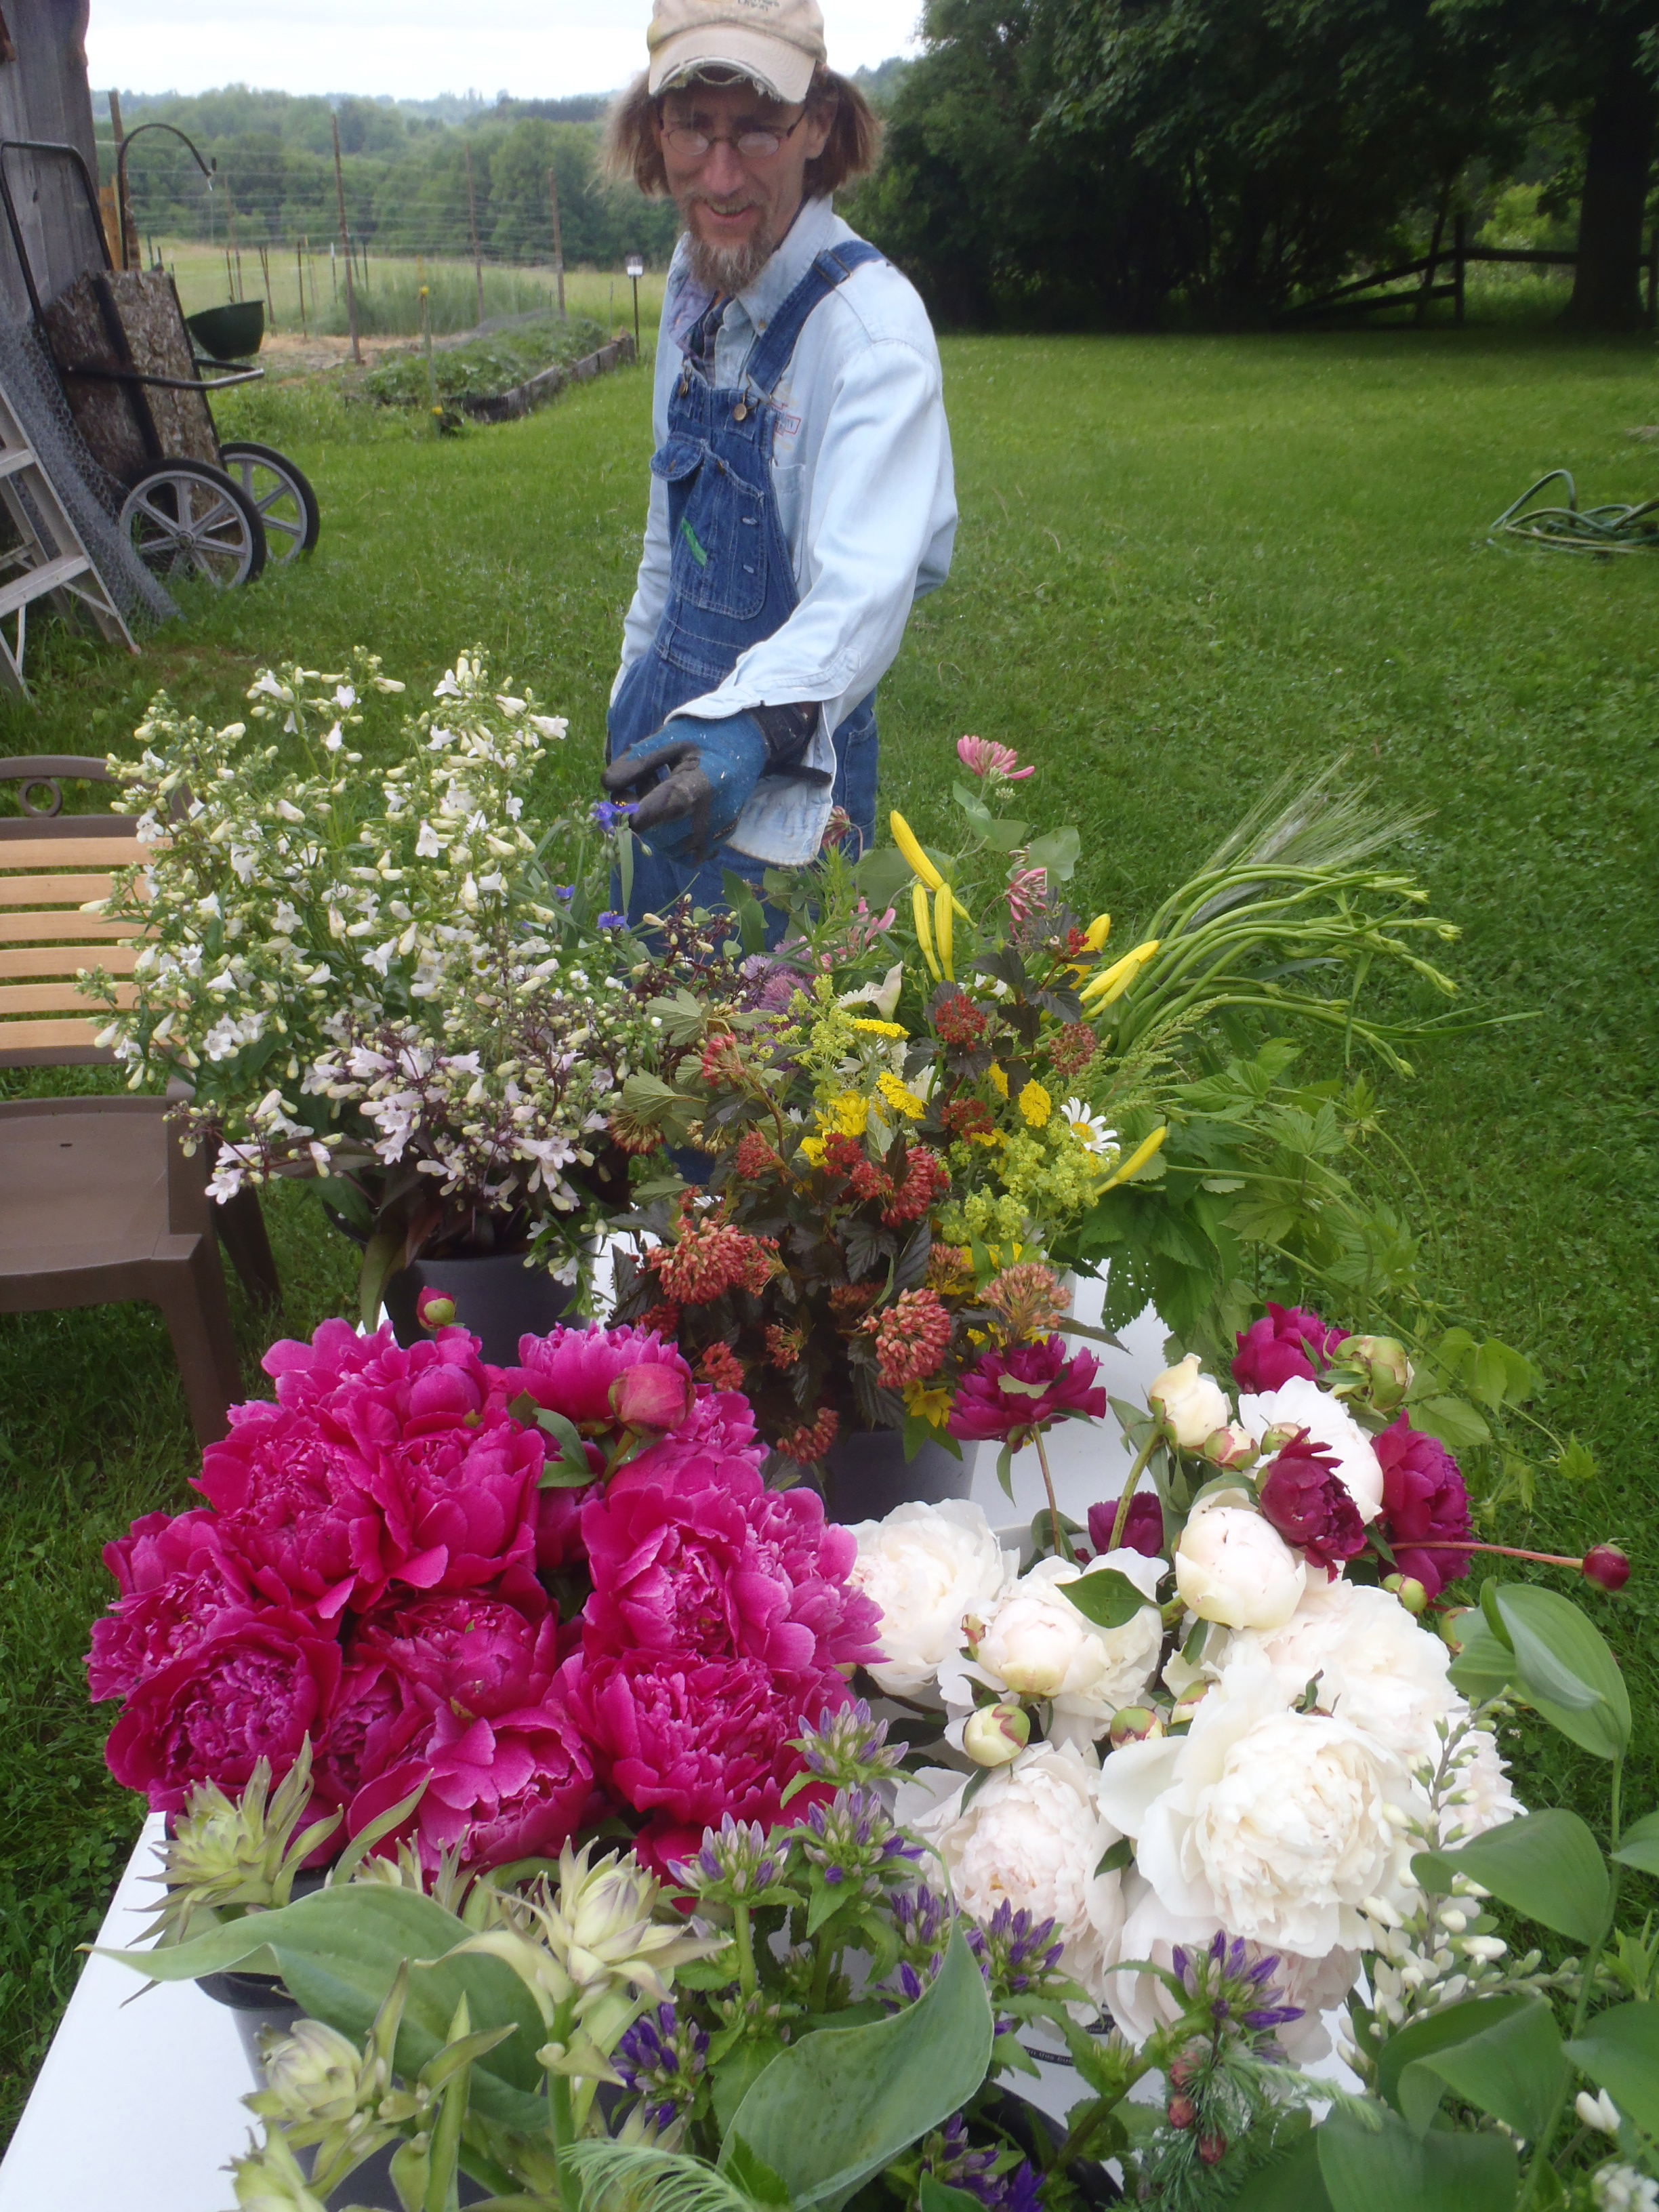 Rob inspecting a peony, June flower harvest for a wedding client. While Rob takes the lead on our vegetable CSA and I spearhead the flower operations, we've both been known to cross-pollinate and mutually support each other's terrain. Photo by Erin Schneider